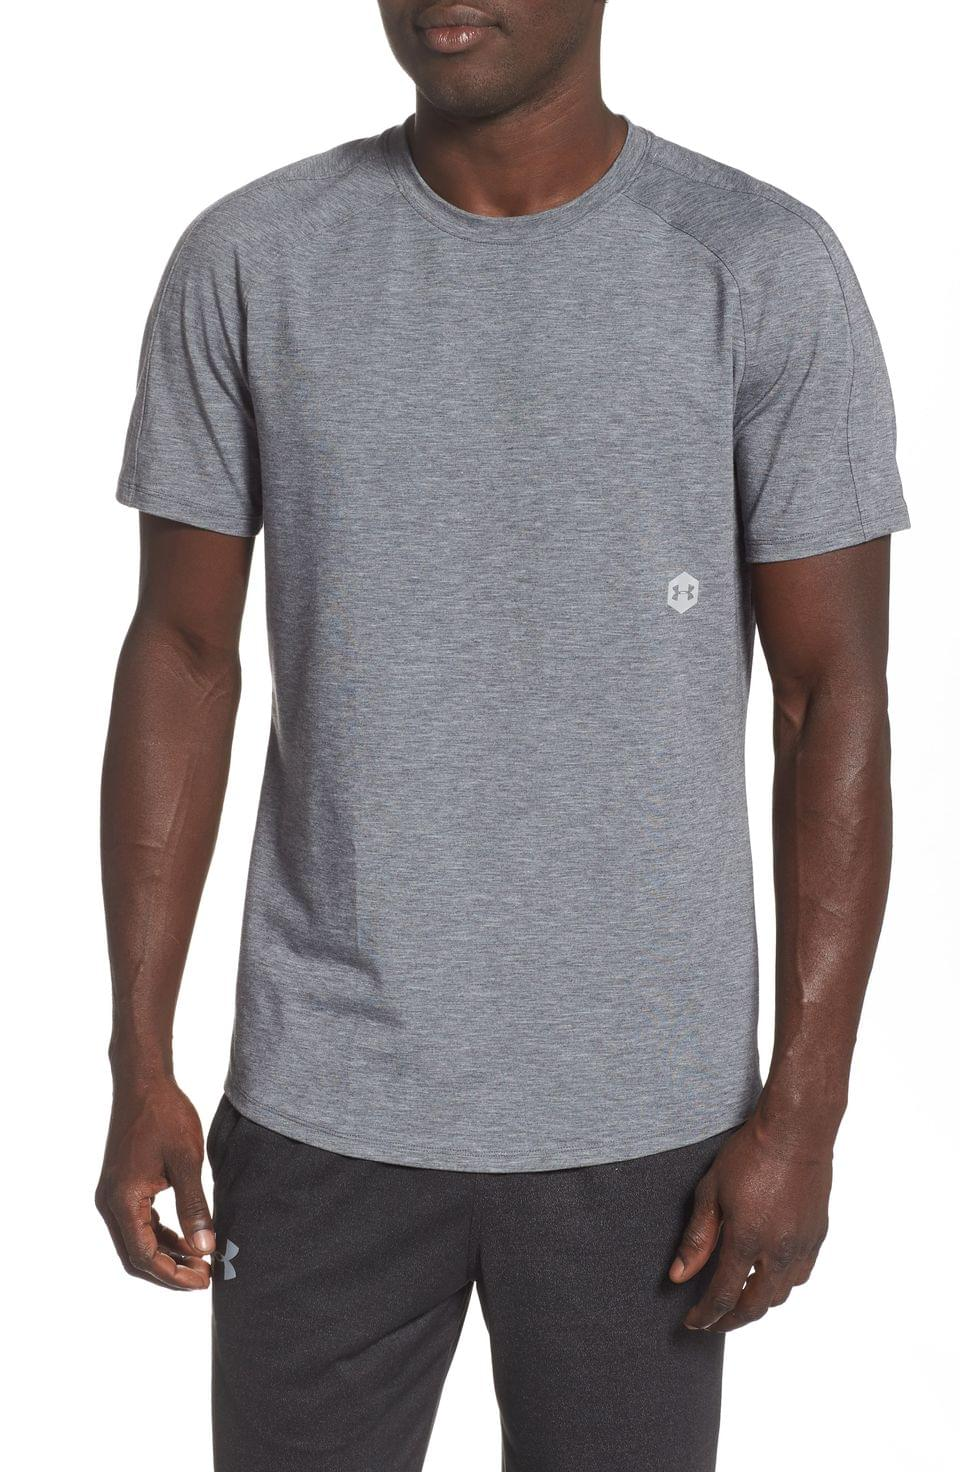 Men's Under Armour Athlete Recovery T-Shirt